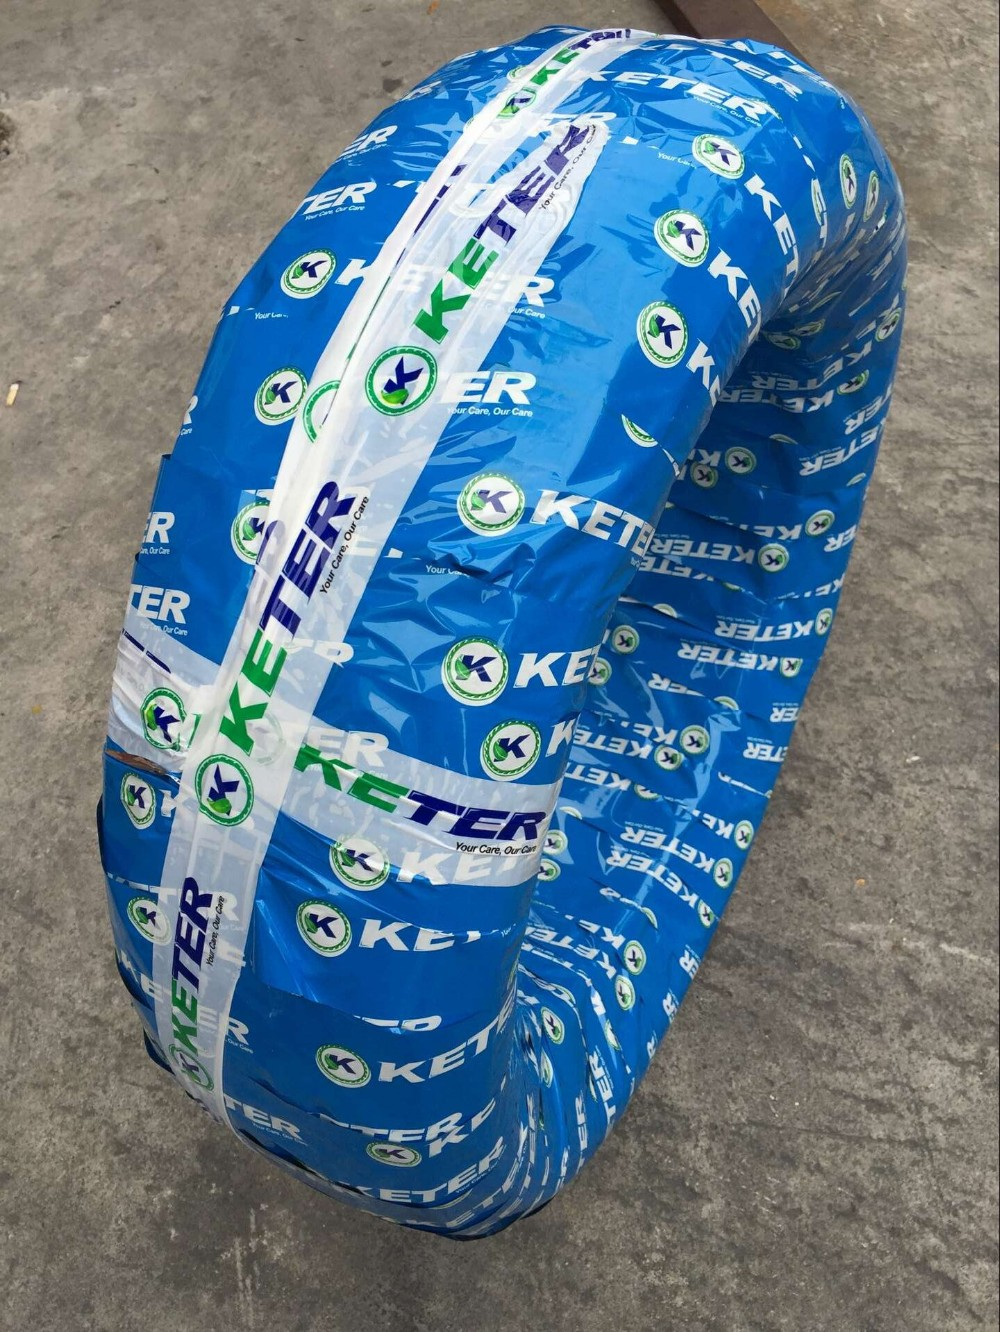 KETER Brand PCR Tyres Chinese Radial Passenger Car Tire from China factory